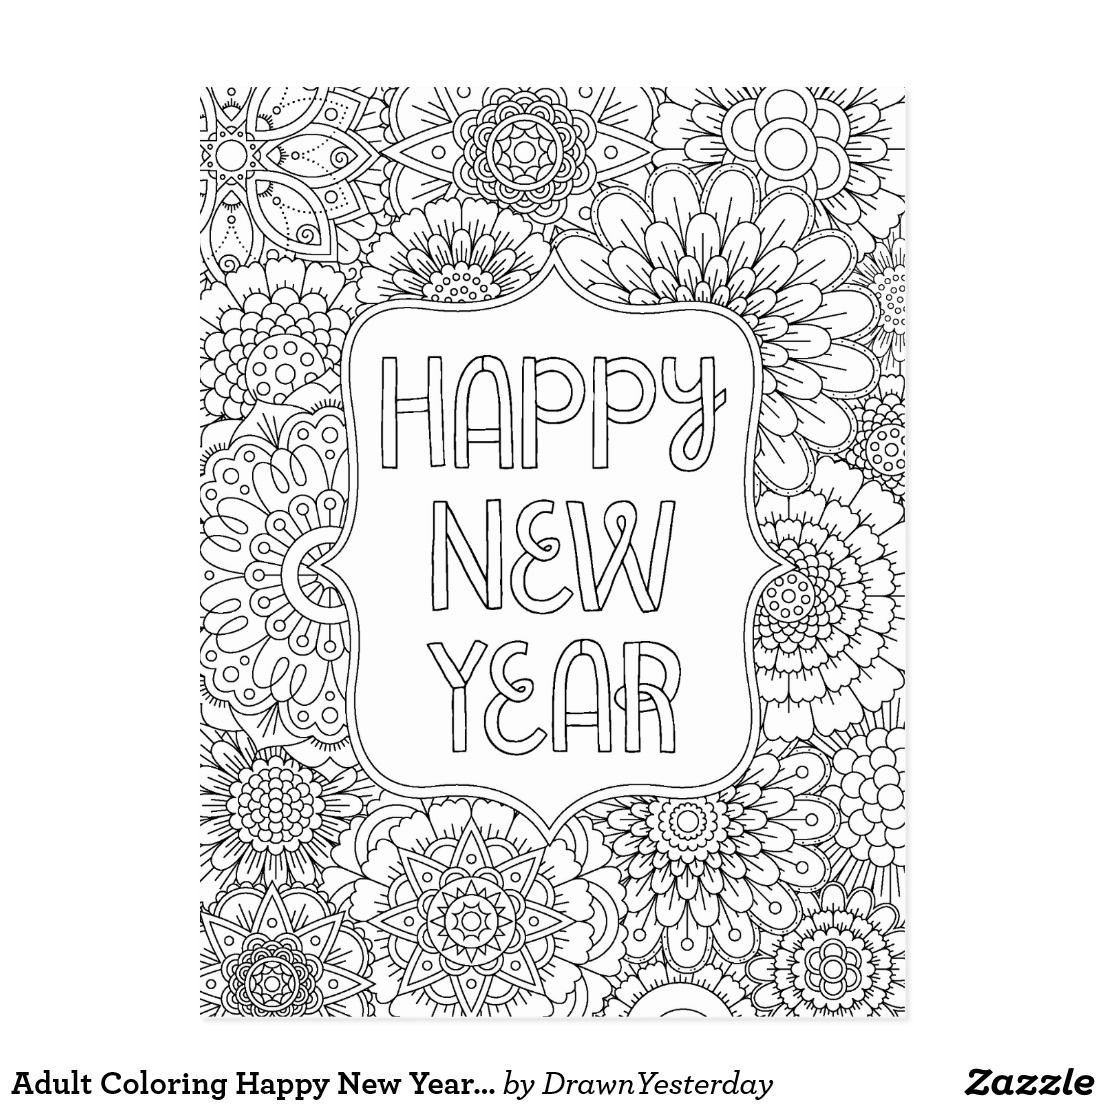 Adult Coloring Happy New Year Postcard | Adult coloring, Coloring ...